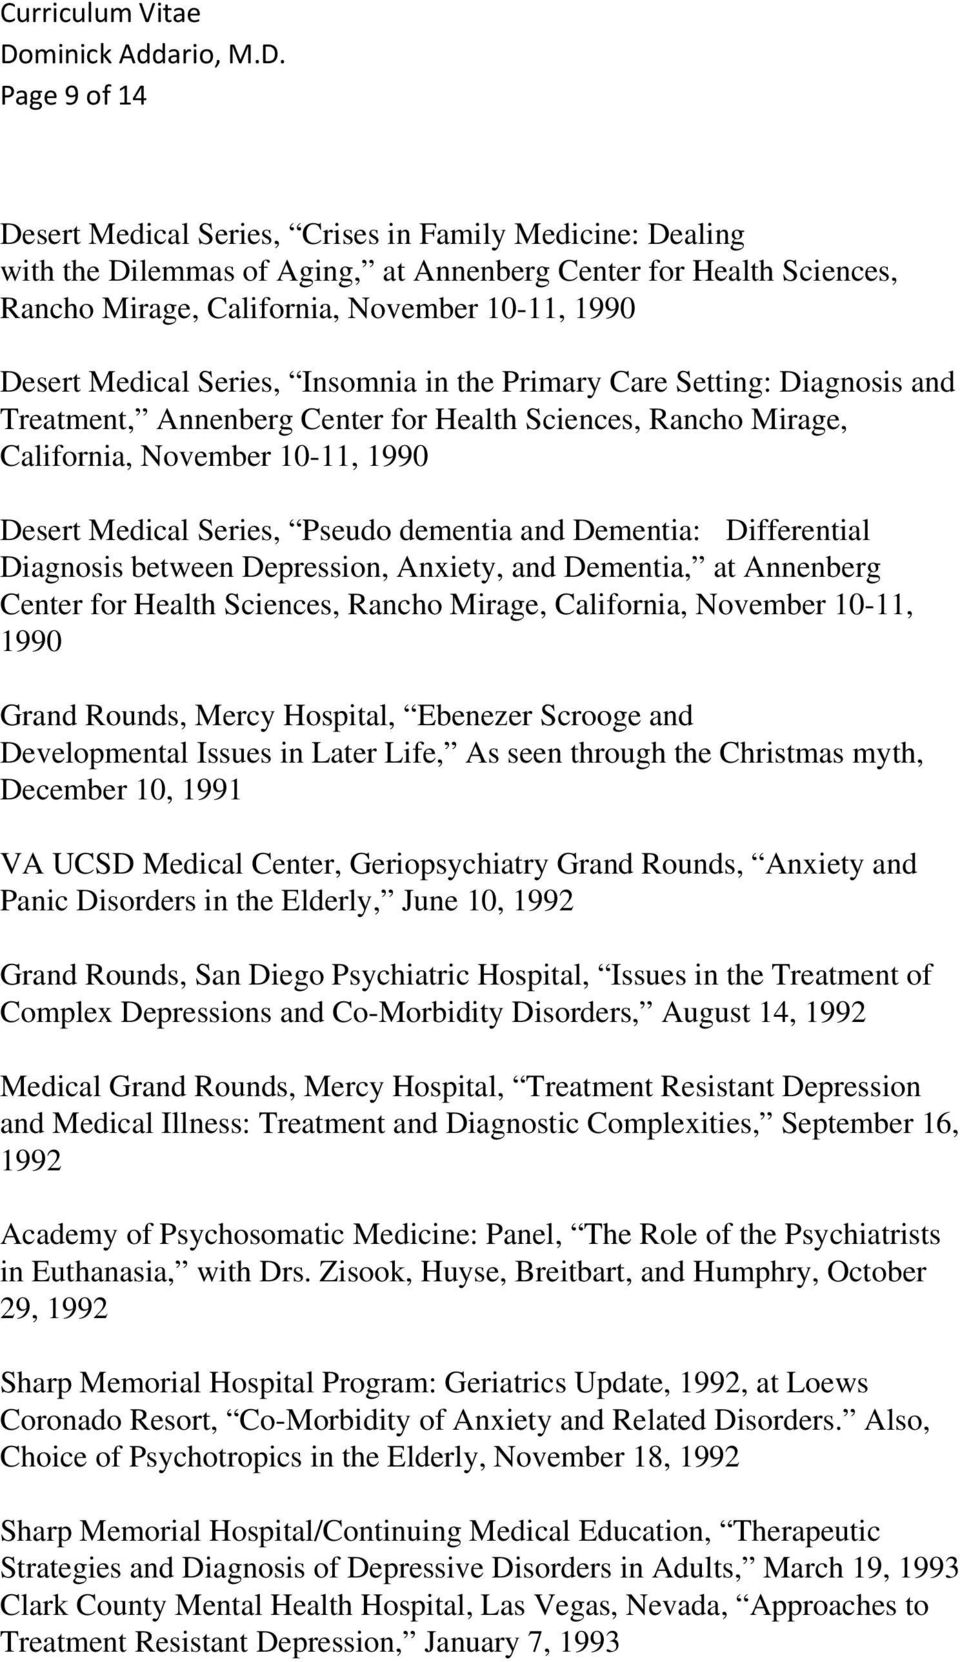 dementia and Dementia: Differential Diagnosis between Depression, Anxiety, and Dementia, at Annenberg Center for Health Sciences, Rancho Mirage, California, November 10-11, 1990 Grand Rounds, Mercy